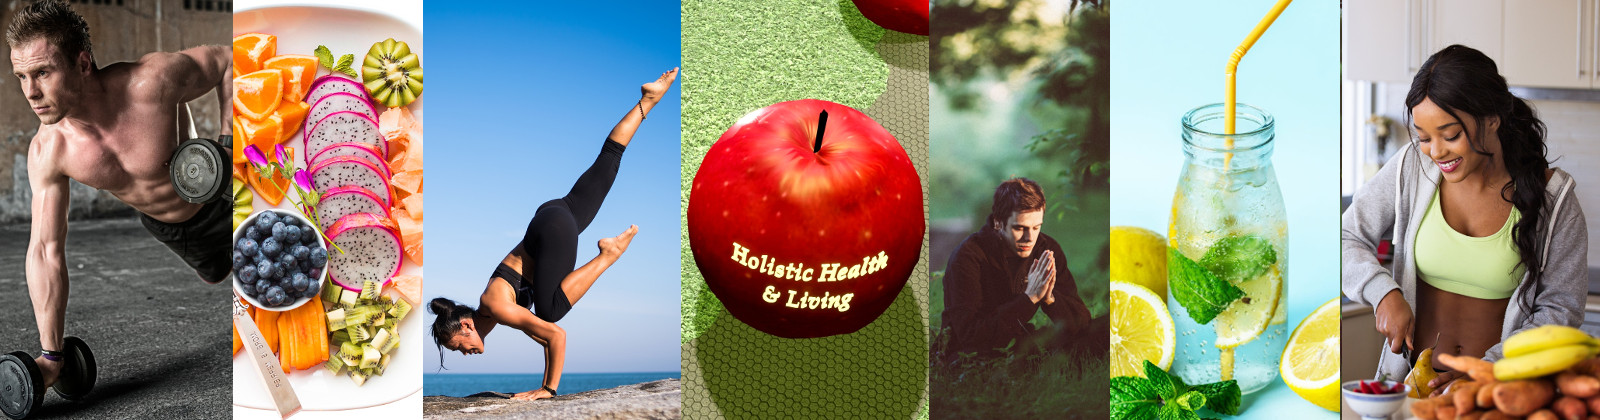 Holistic Health & Living